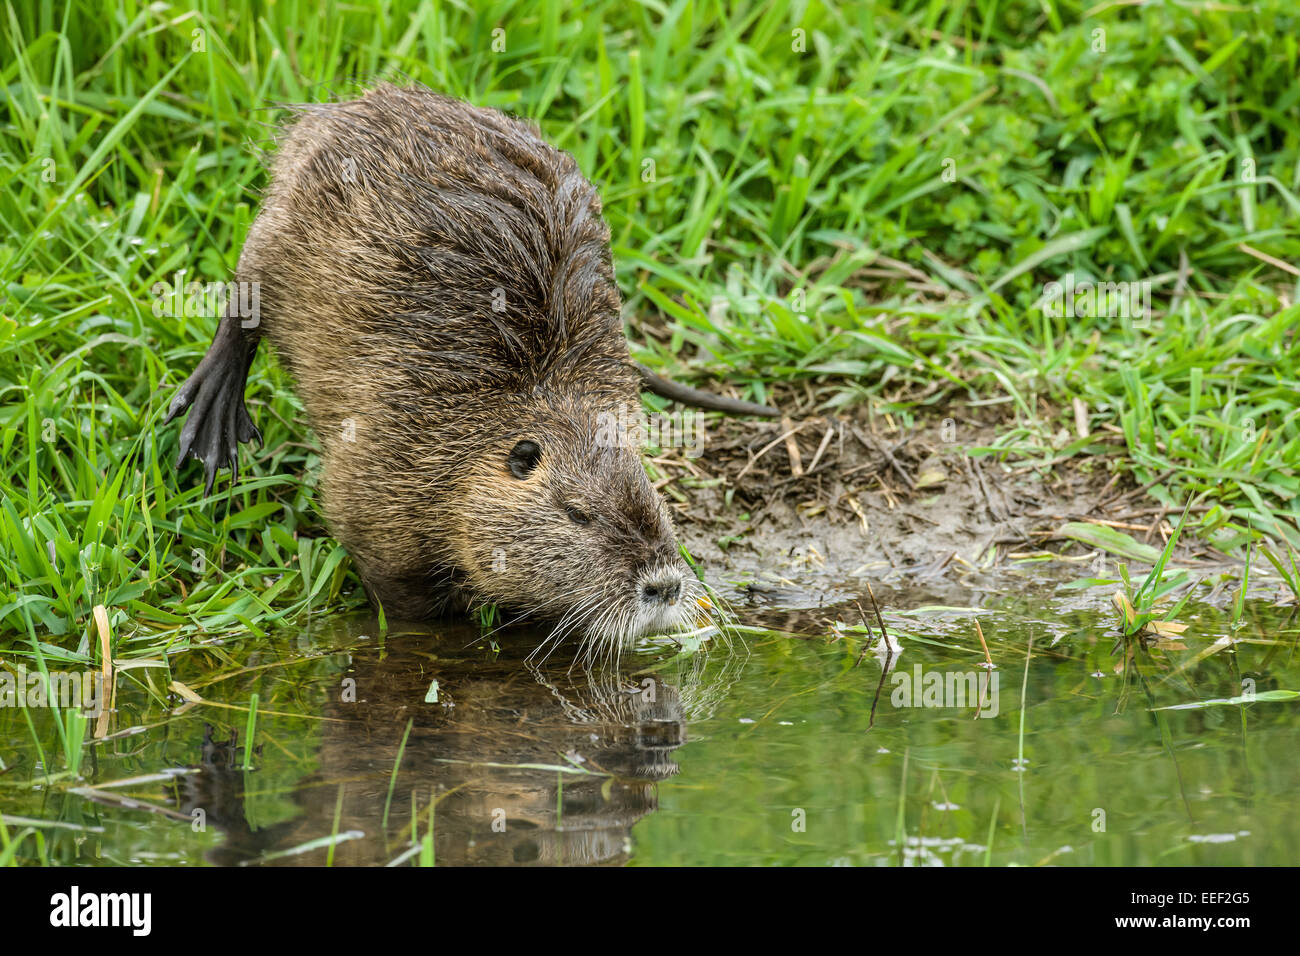 Coypu, also known as the river rat or nutria, is a large, omnivorous, semi-aquatic rodent. Stock Photo